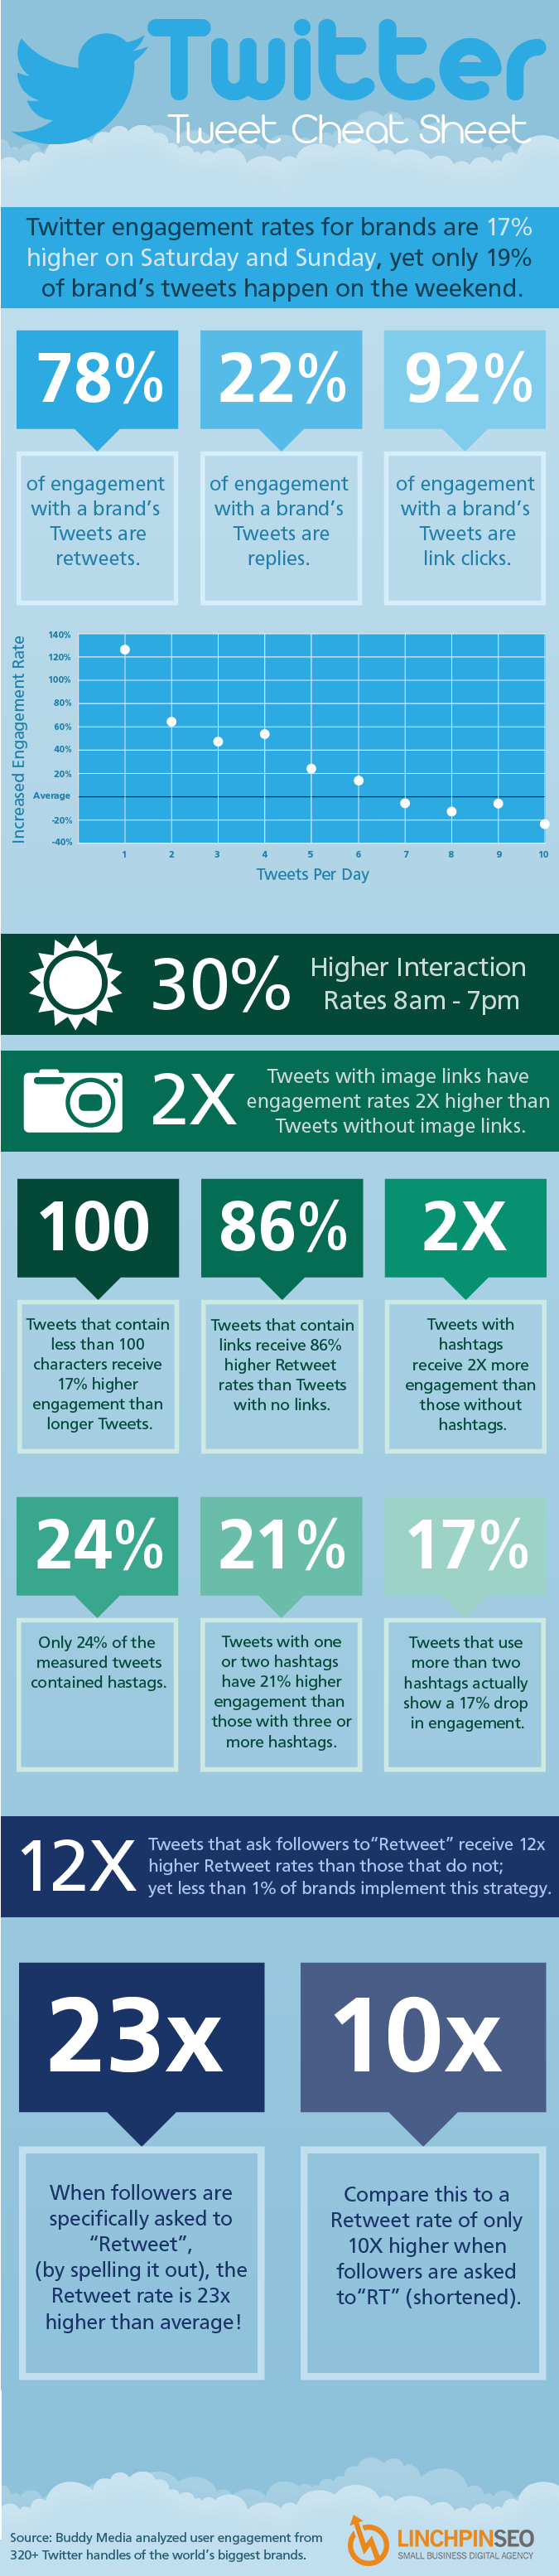 Twitter Cheat Sheet: When and How to Tweet Infographic